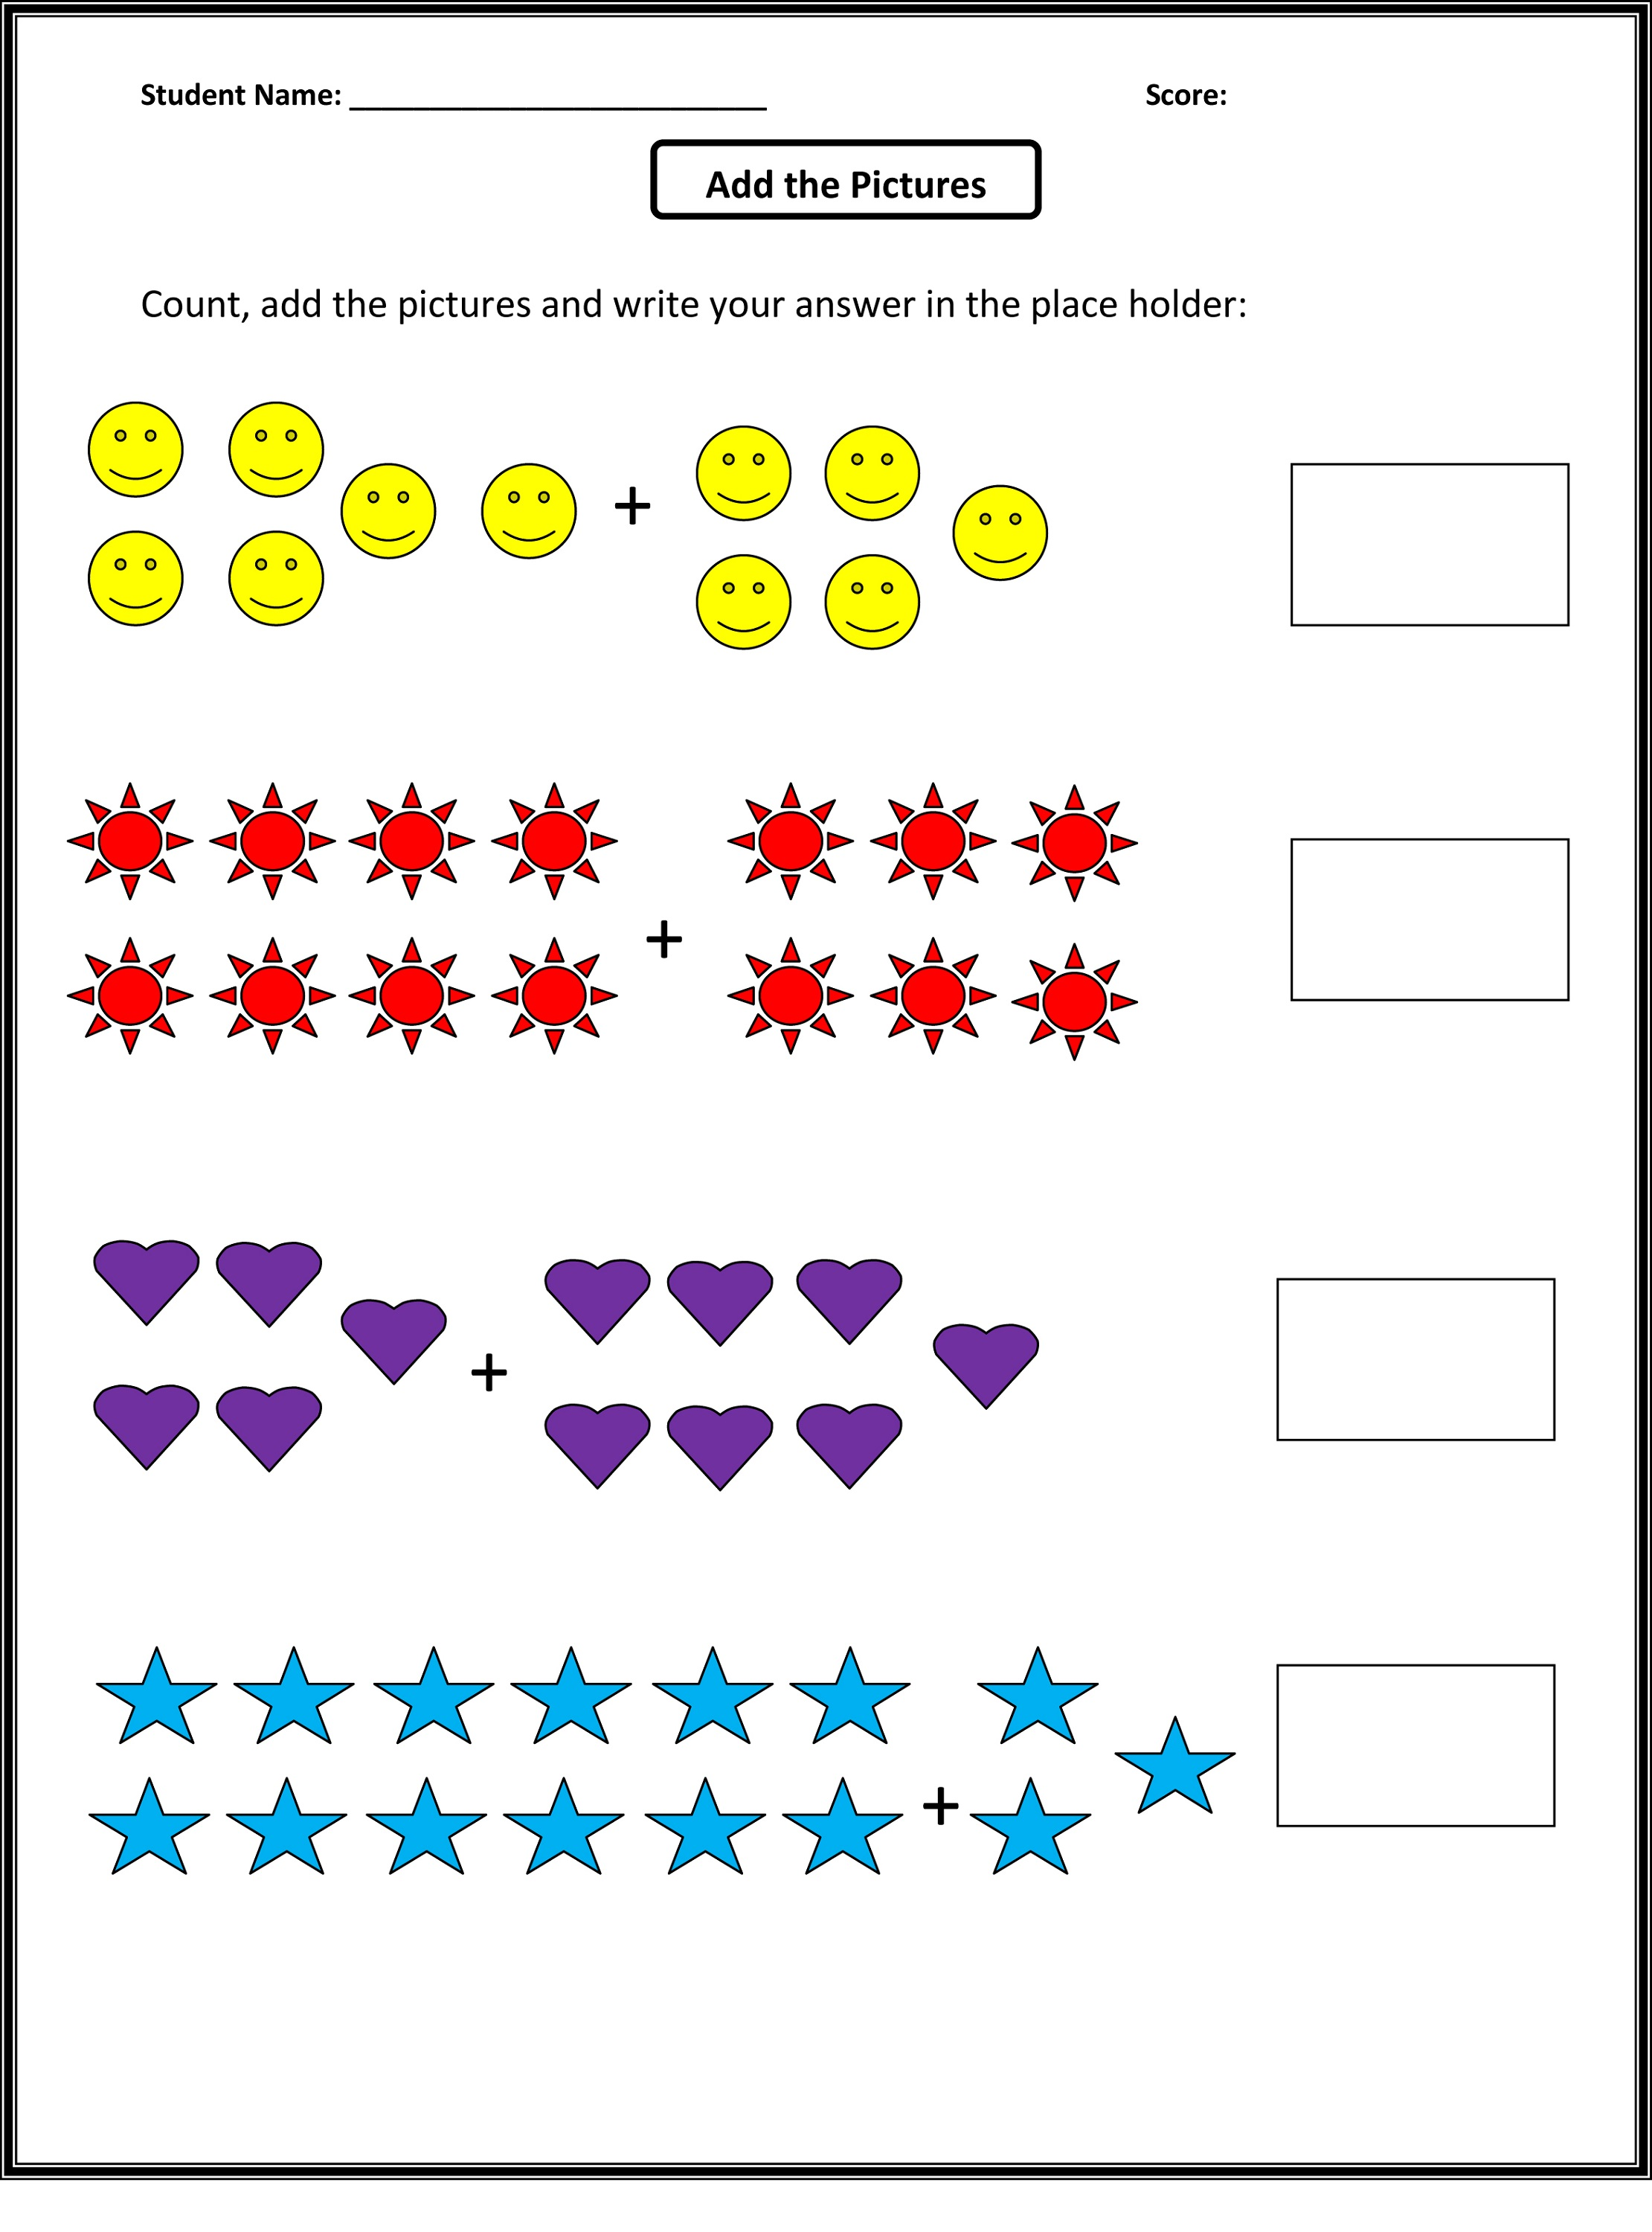 Kindergarten Kids : Addition Worksheets For Kids Loving Printable ...